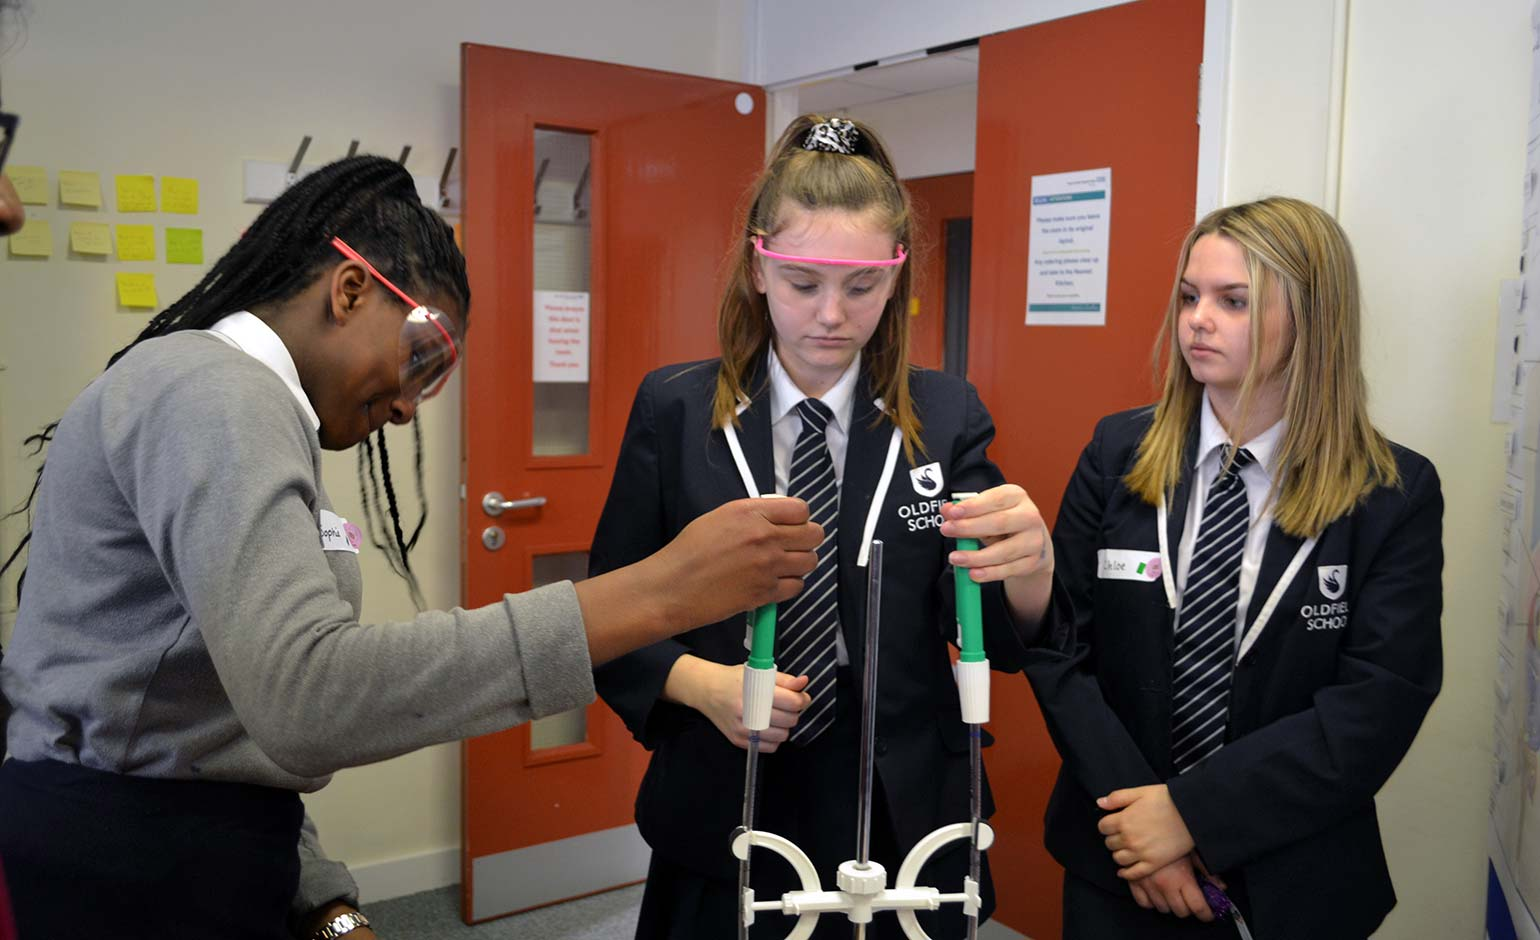 Sixth form students get hands on with scientific activities at RUH in Bath